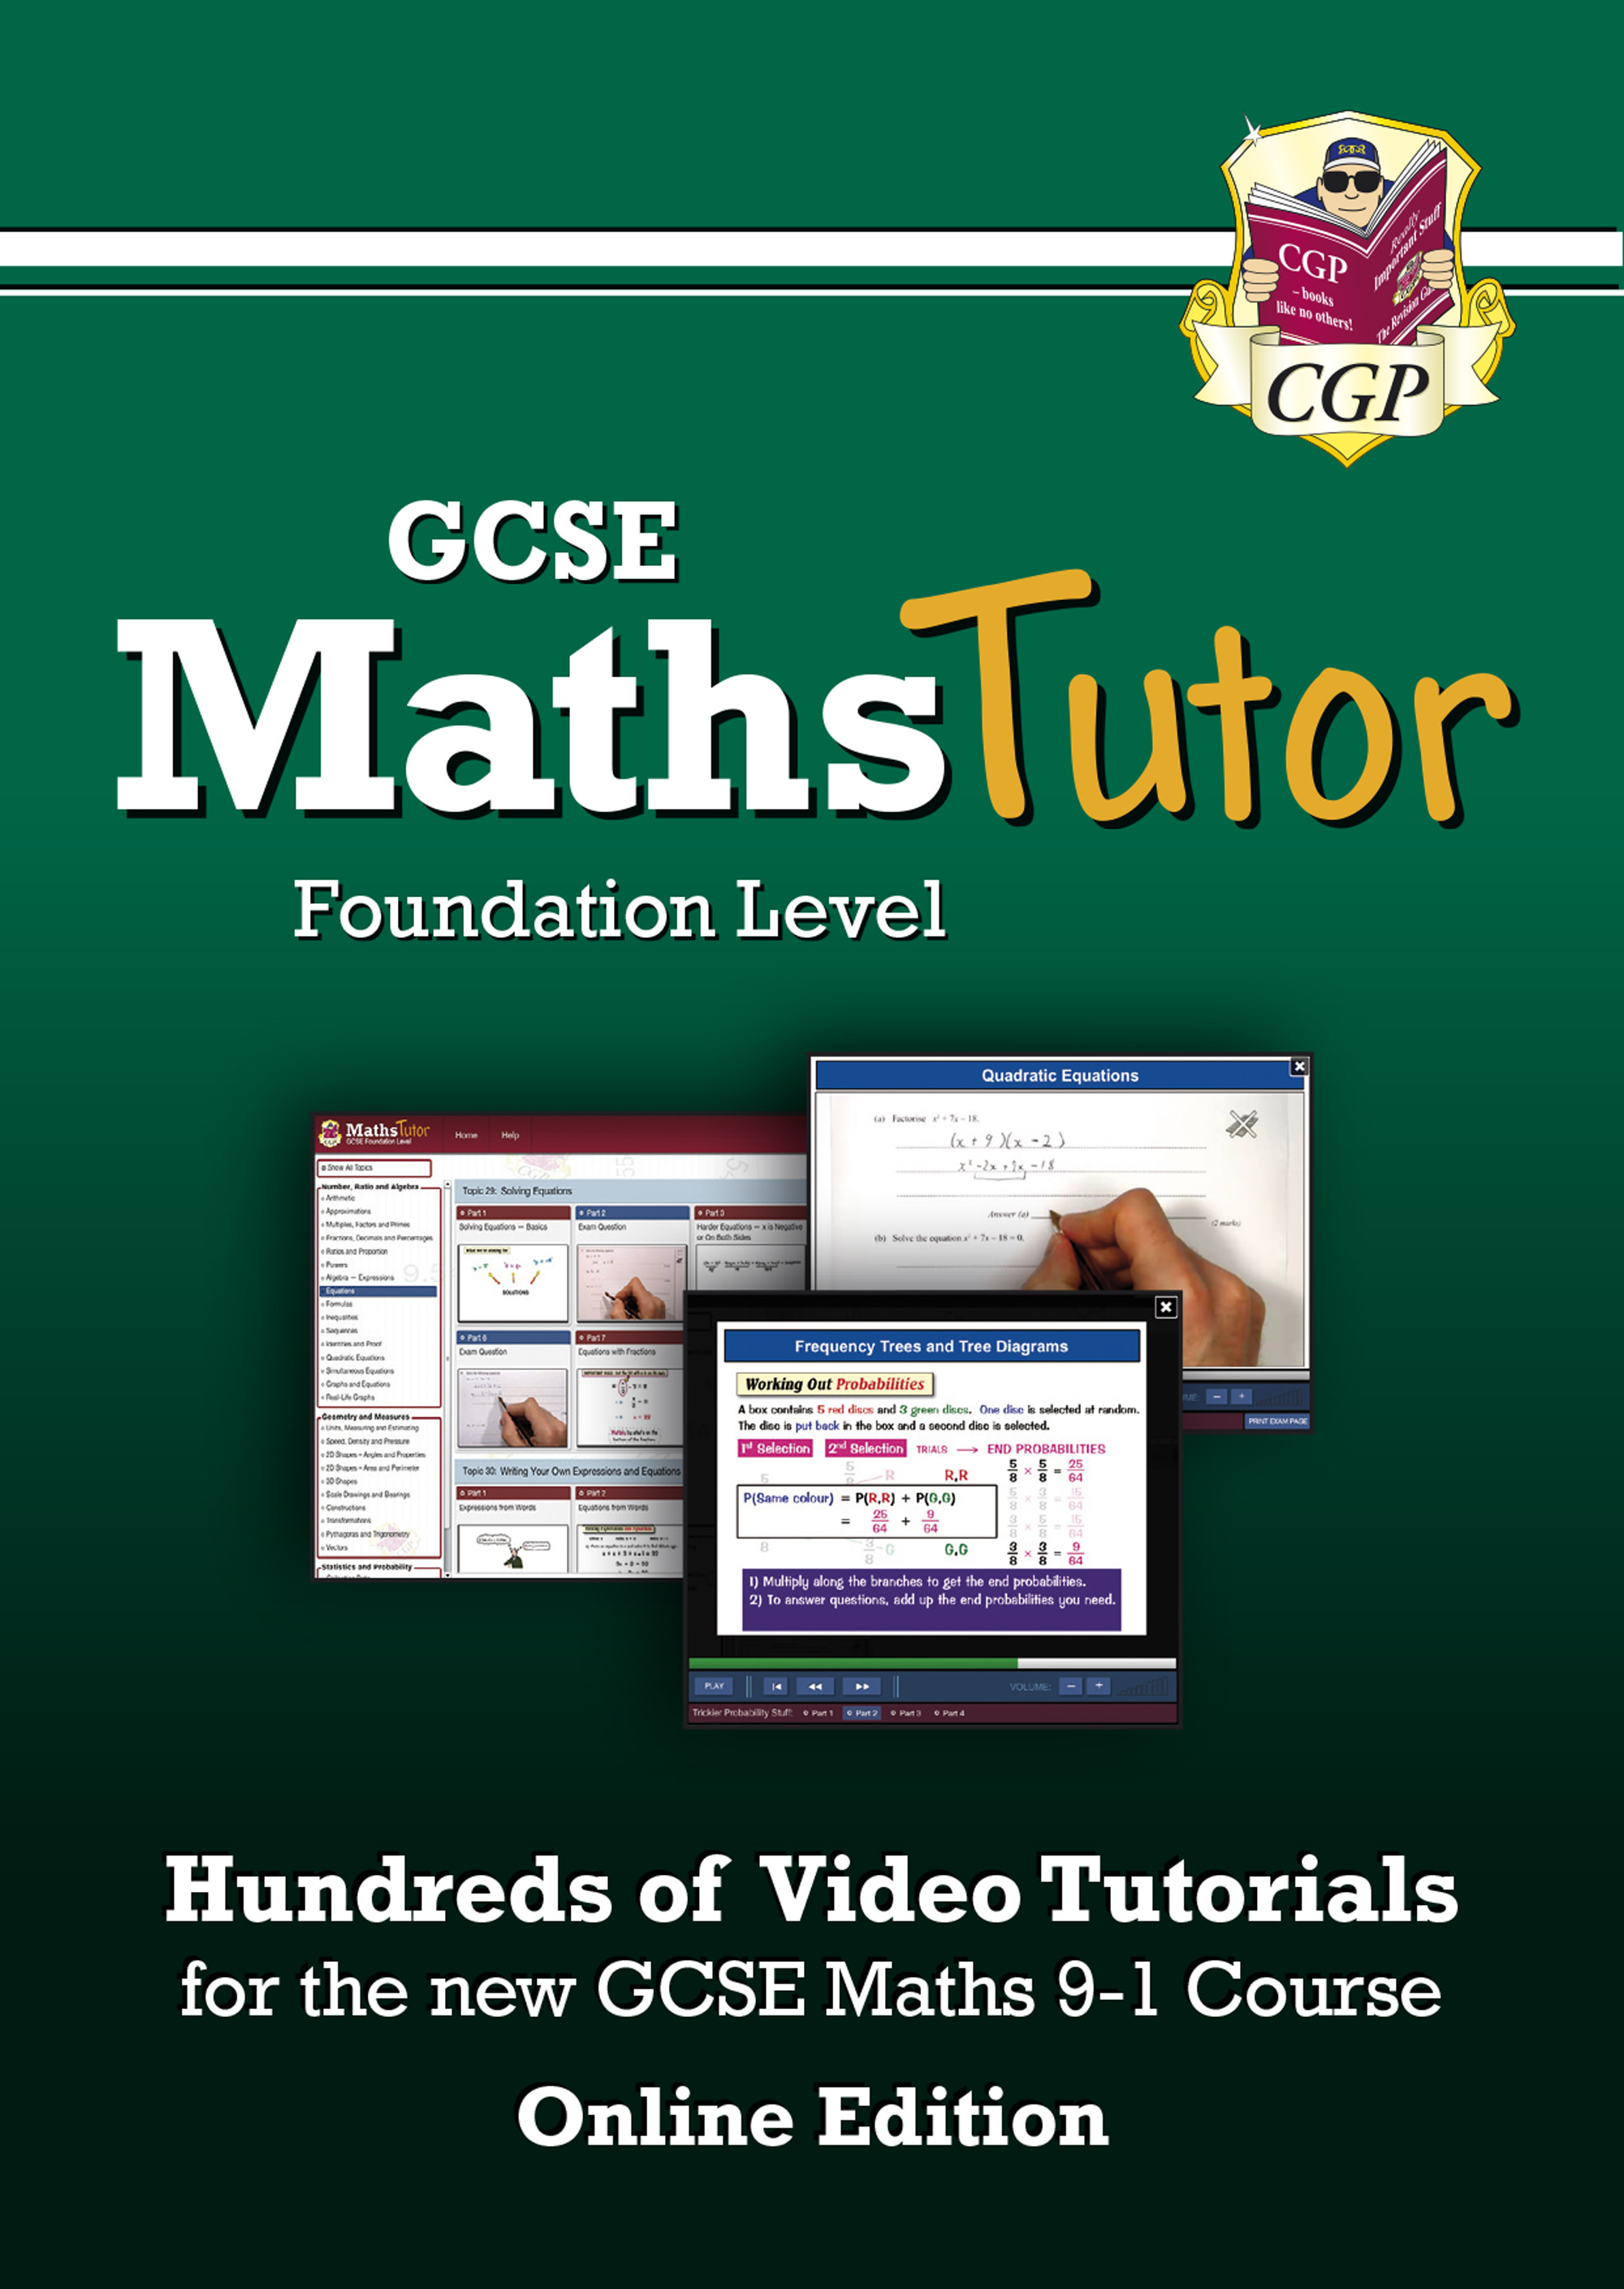 MFVC43D - MathsTutor: GCSE Maths Video Tutorials (Grade 9-1 Course) Foundation - Online Edition